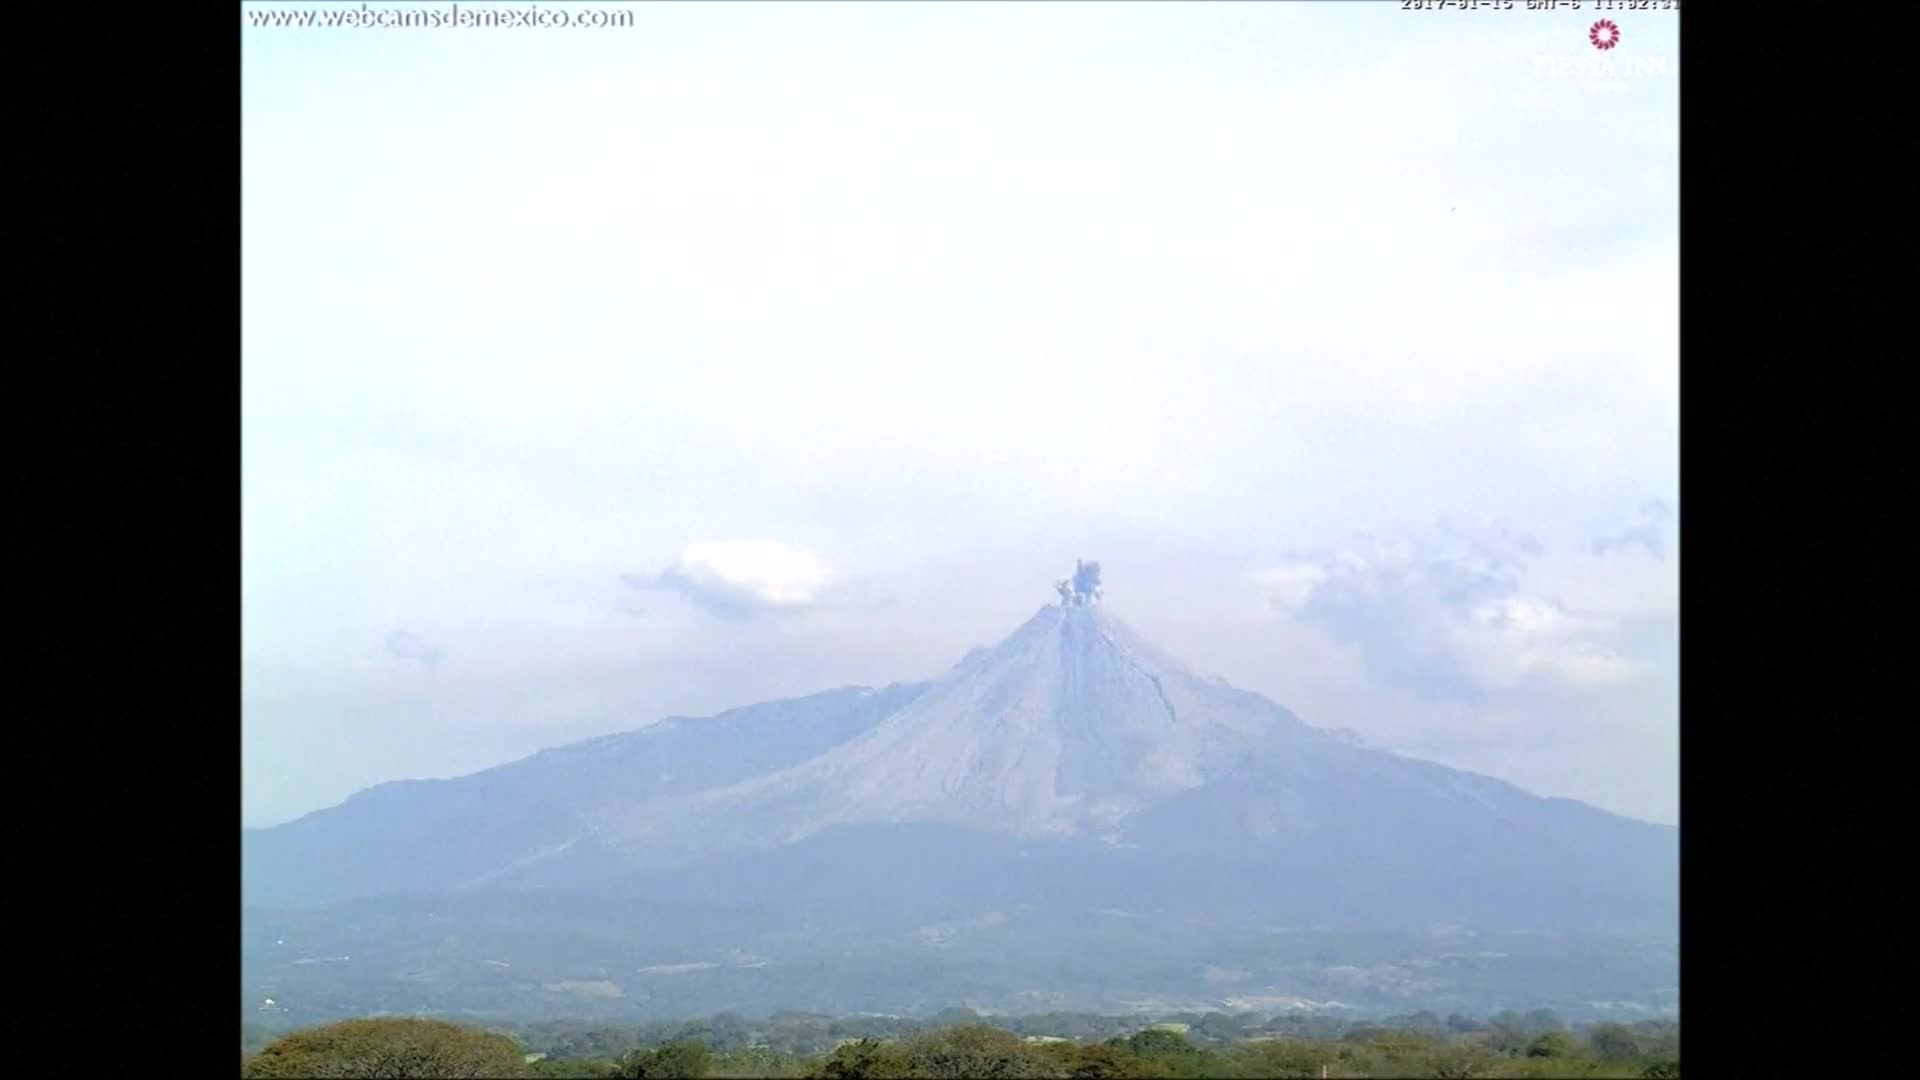 Mexico's Colima volcano erupts three times over the weekend